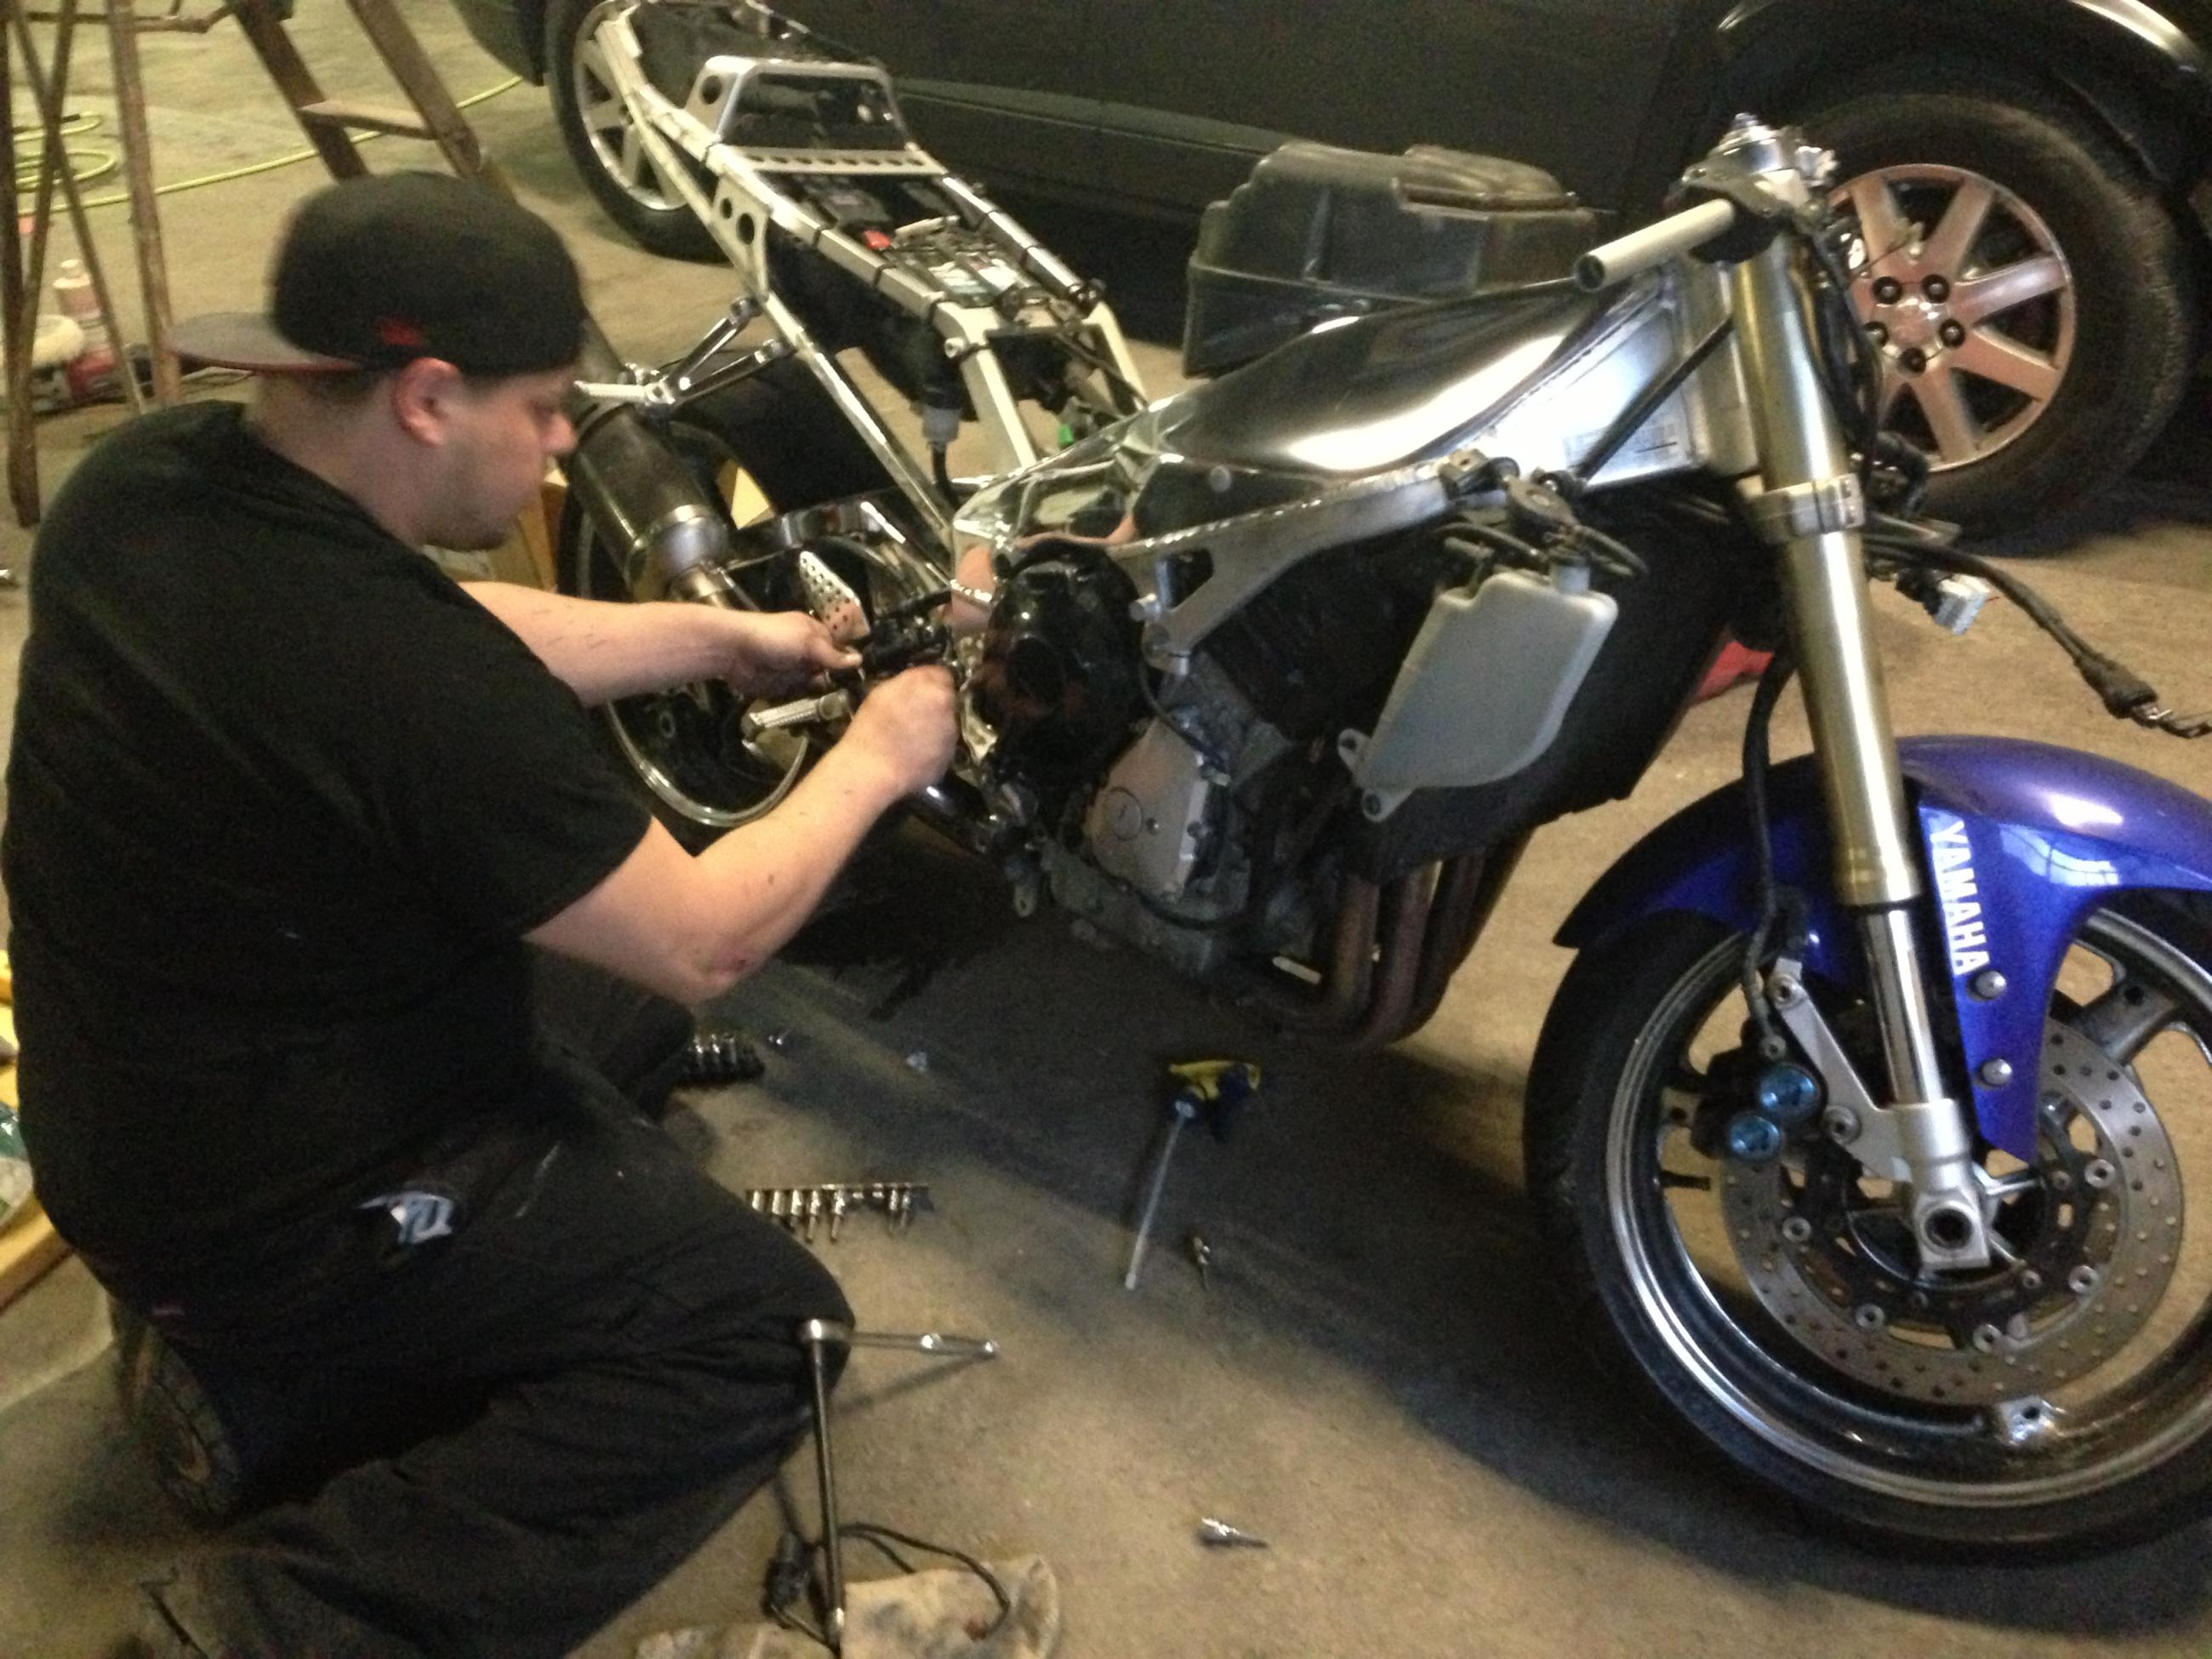 yamaha r1.motocycle repair as well